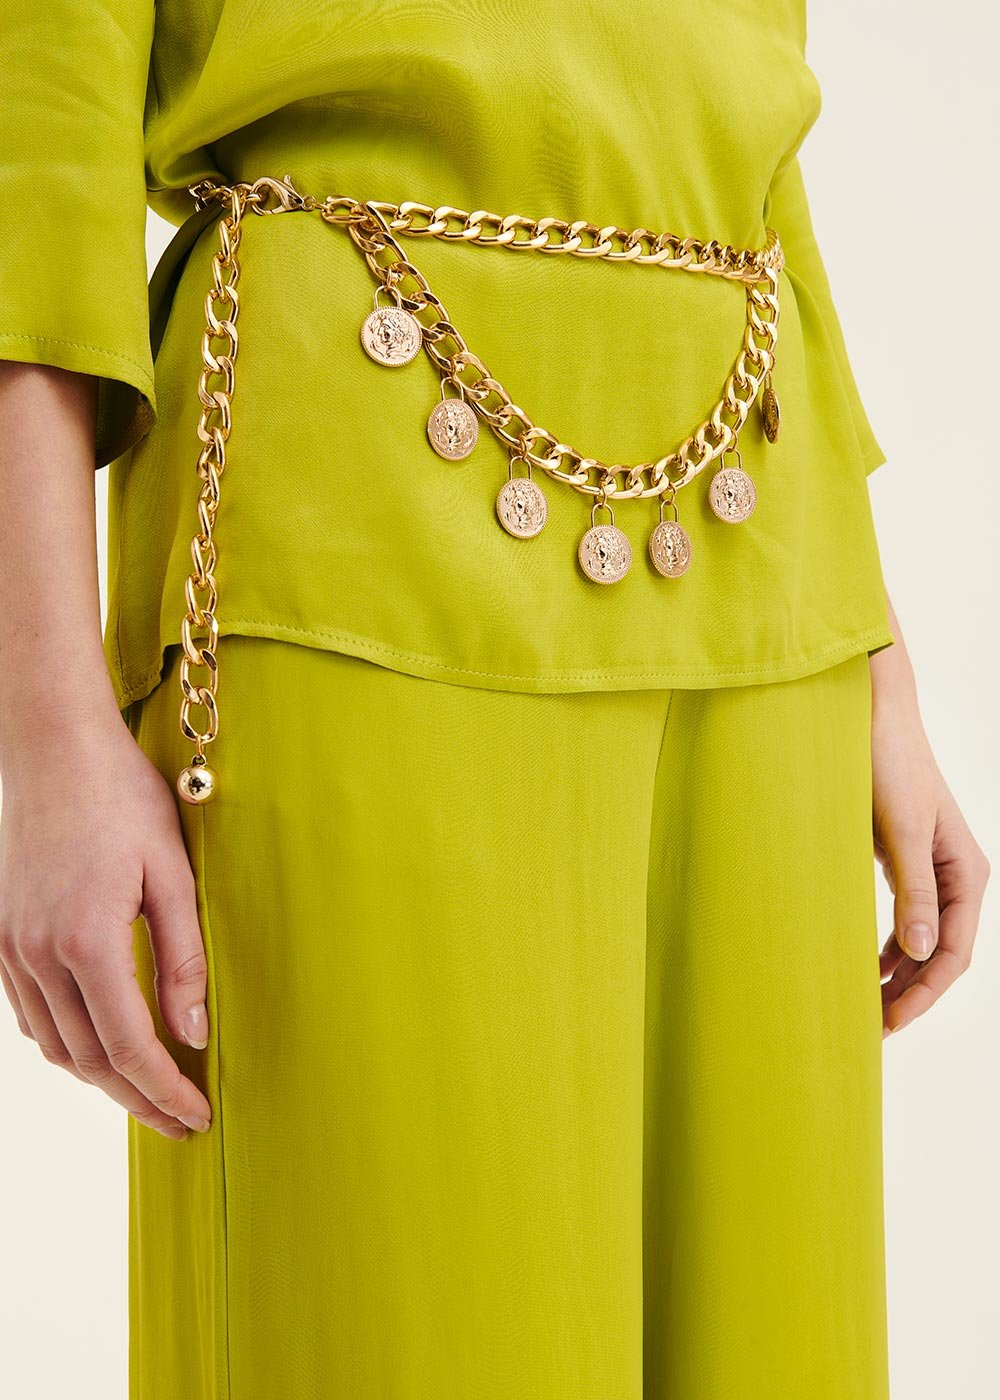 Calley belt with metal chain - Woman